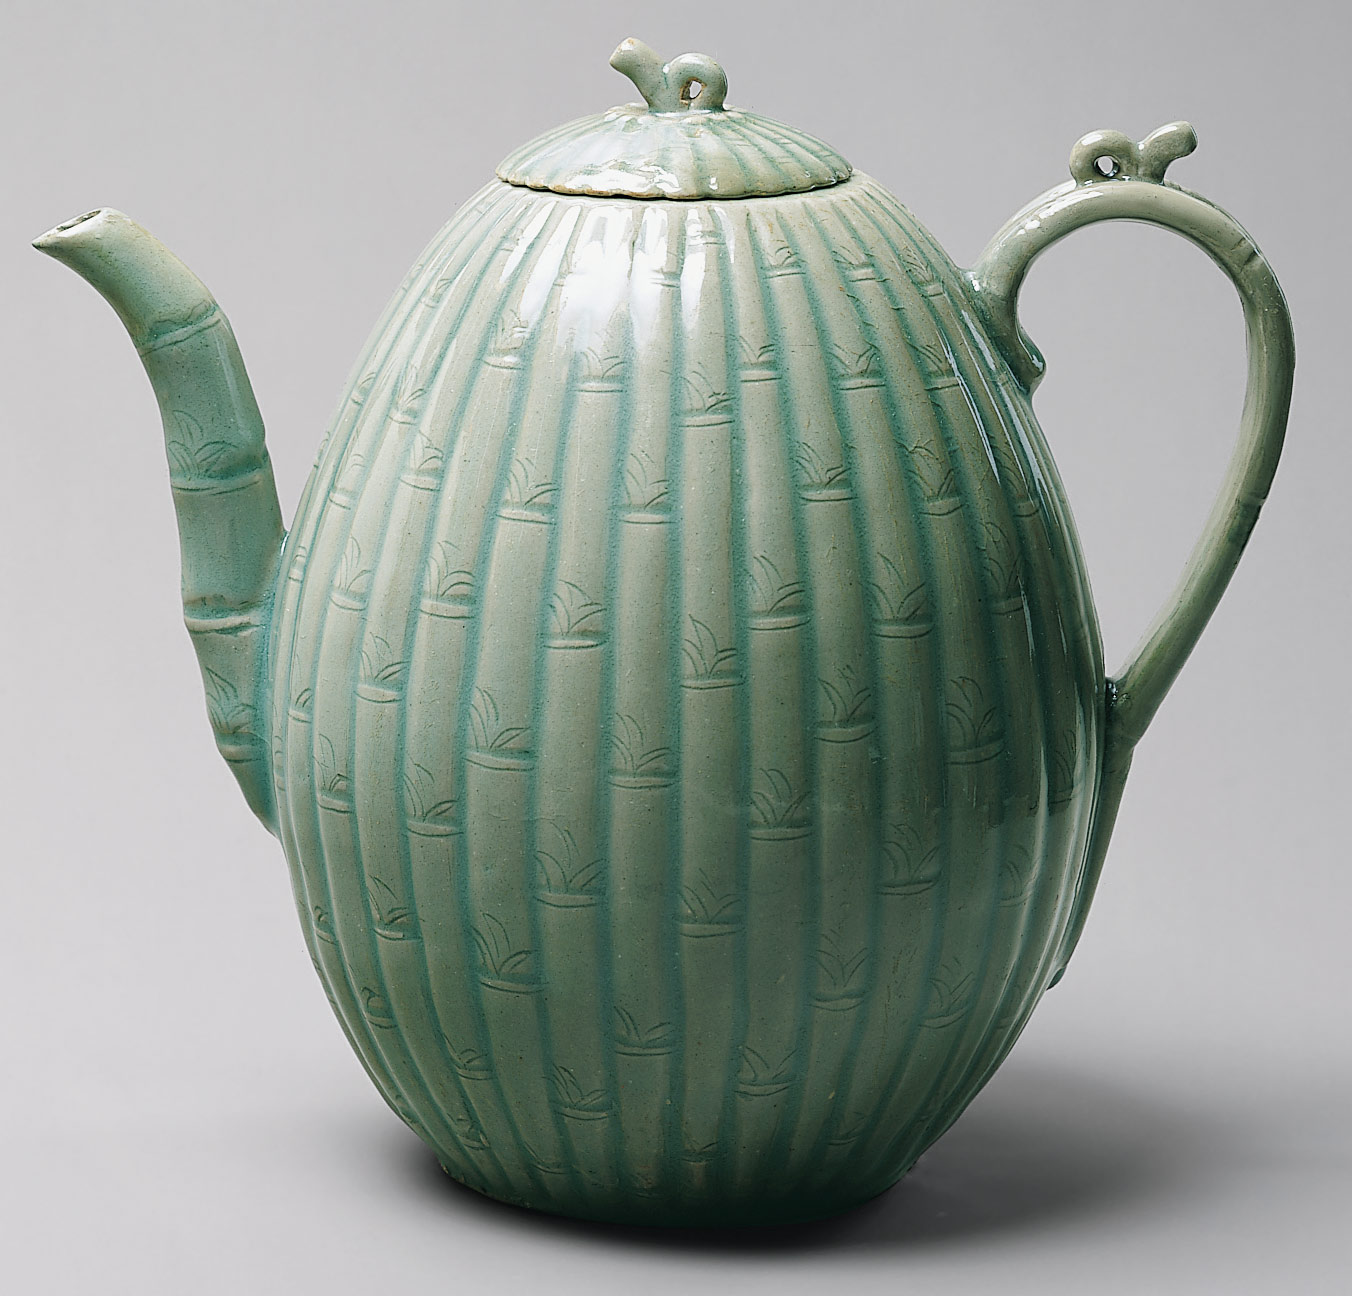 Melon-shaped ewer with bamboo decoration